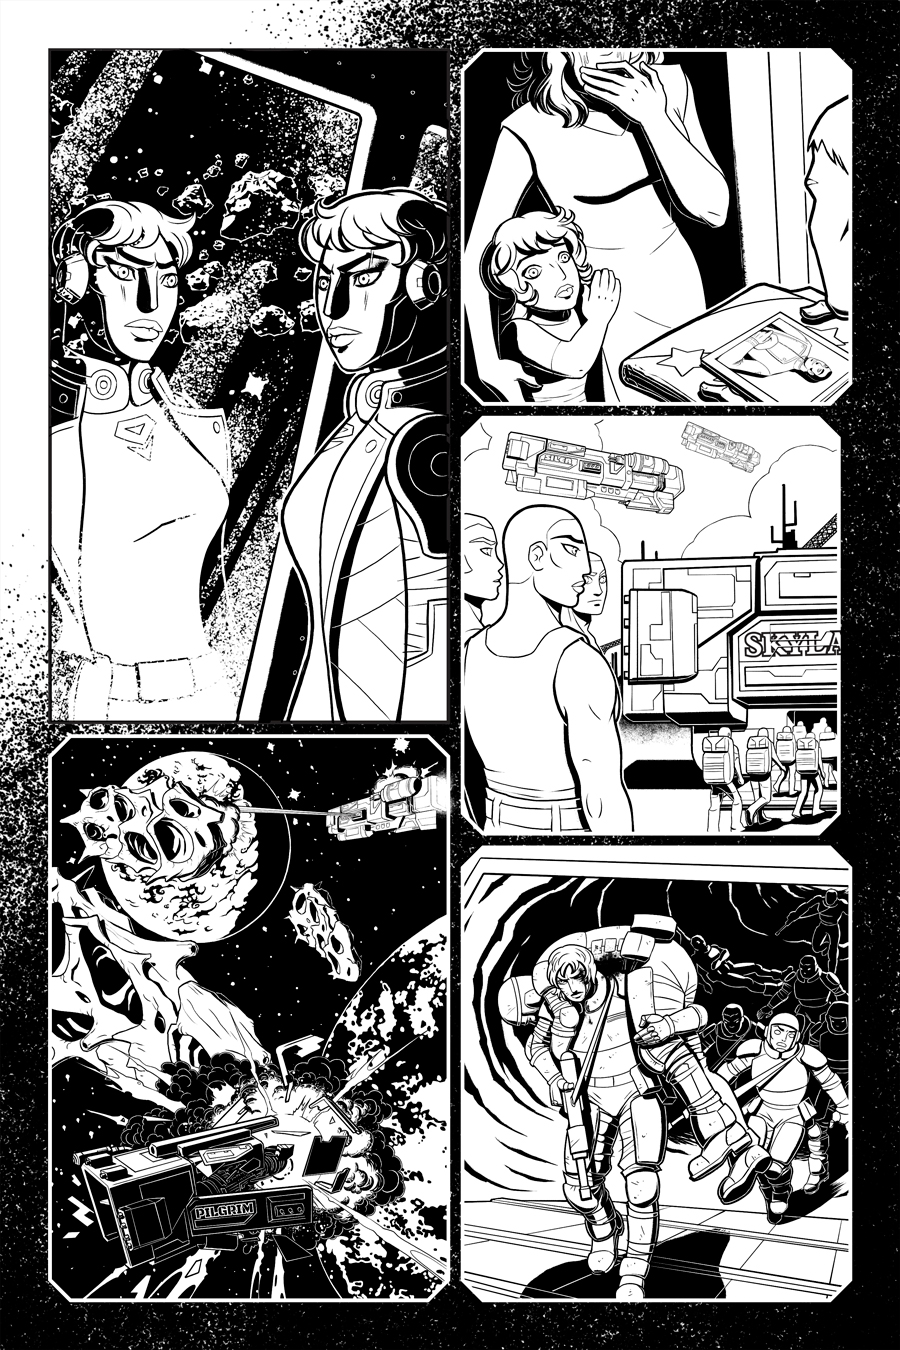 Lionheart - Page 1 by ClaudiaCangini